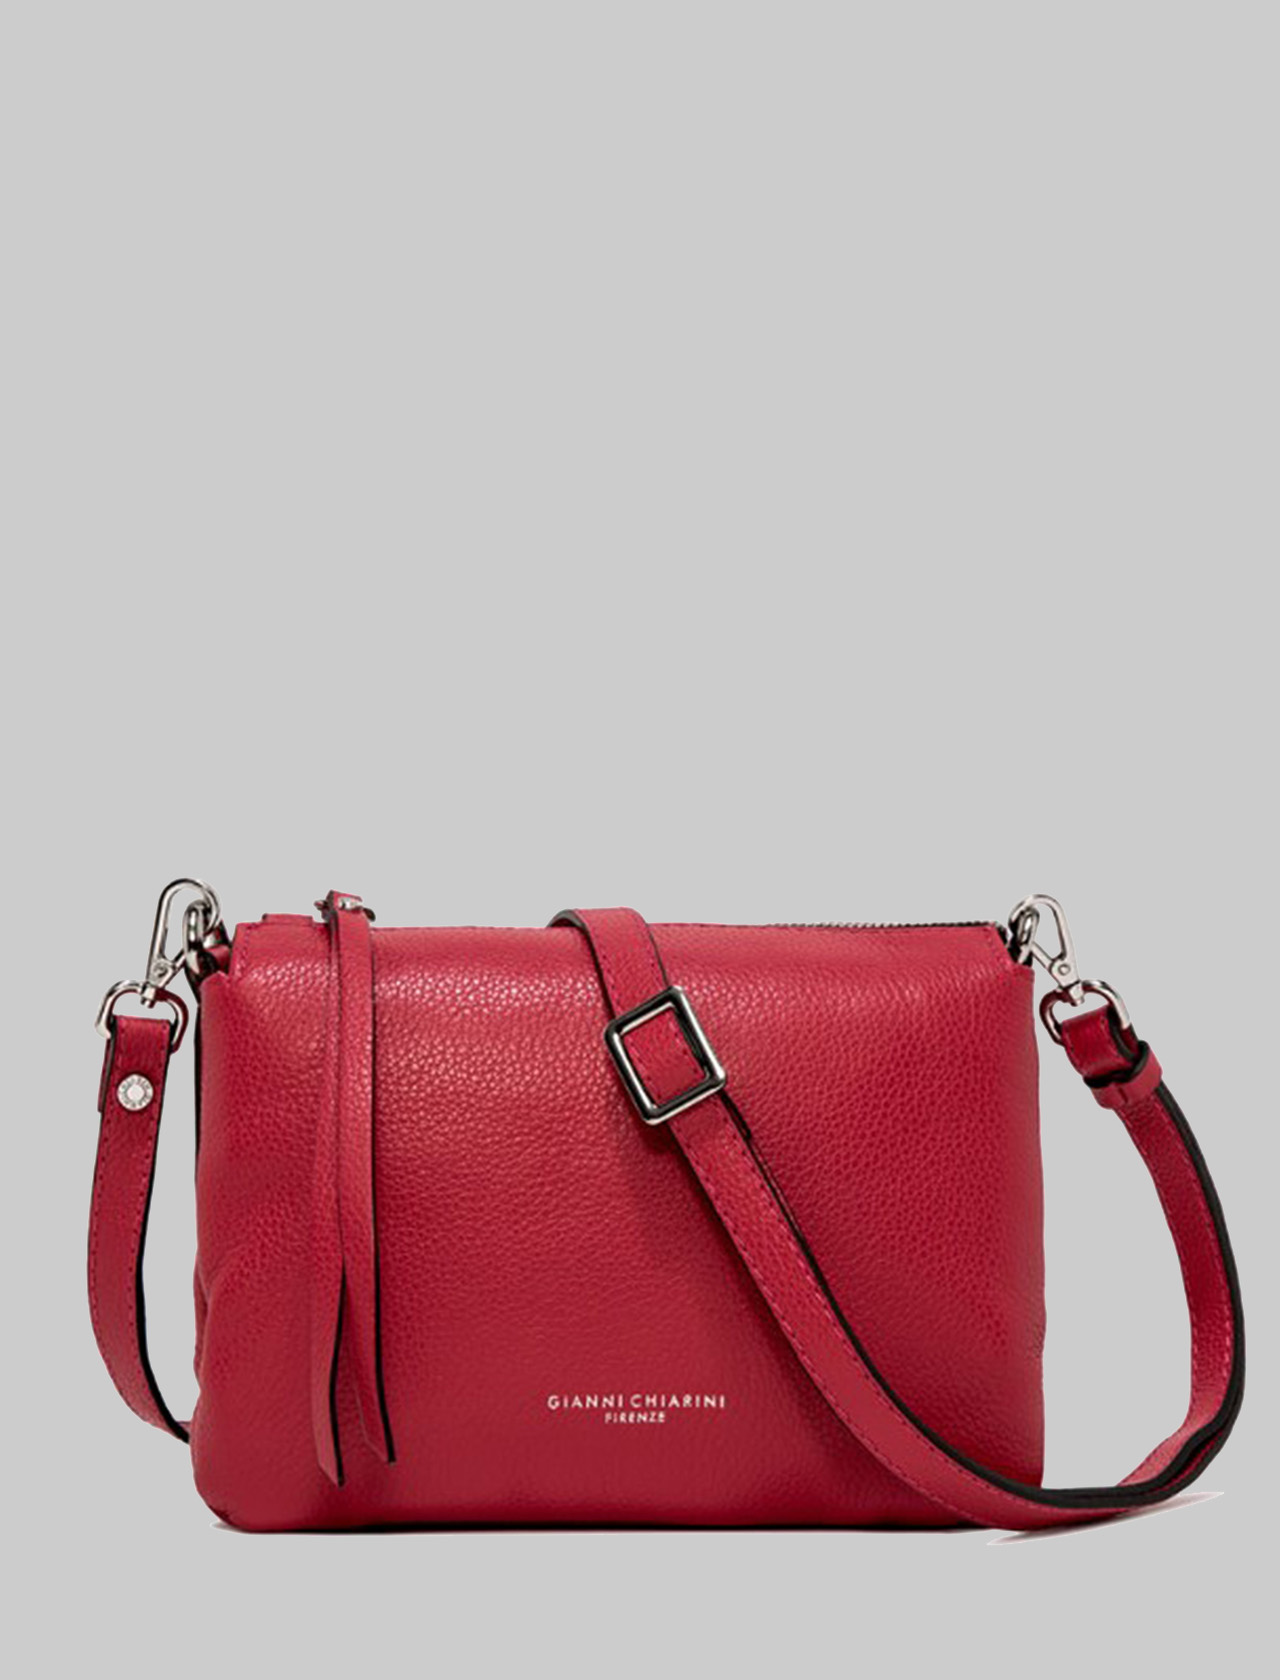 Small Three Shoulder Bag In Red Leather With Removable And Adjustable Shoulder Strap Gianni Chiarini | Bags and backpacks | BS436211707